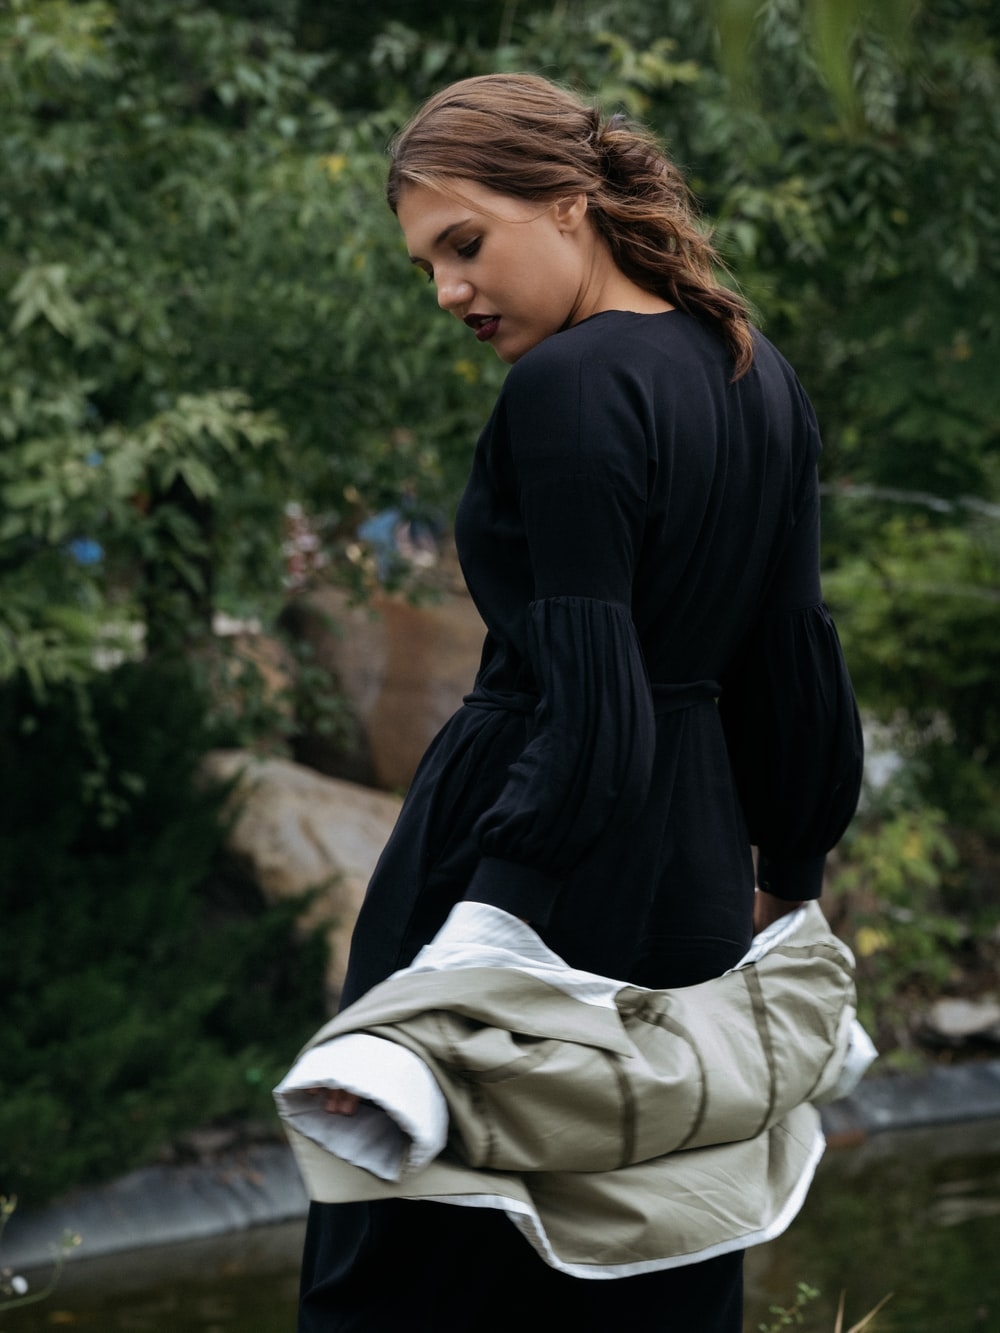 woman in black long sleeve shirt and white pants sitting on concrete bench during daytime